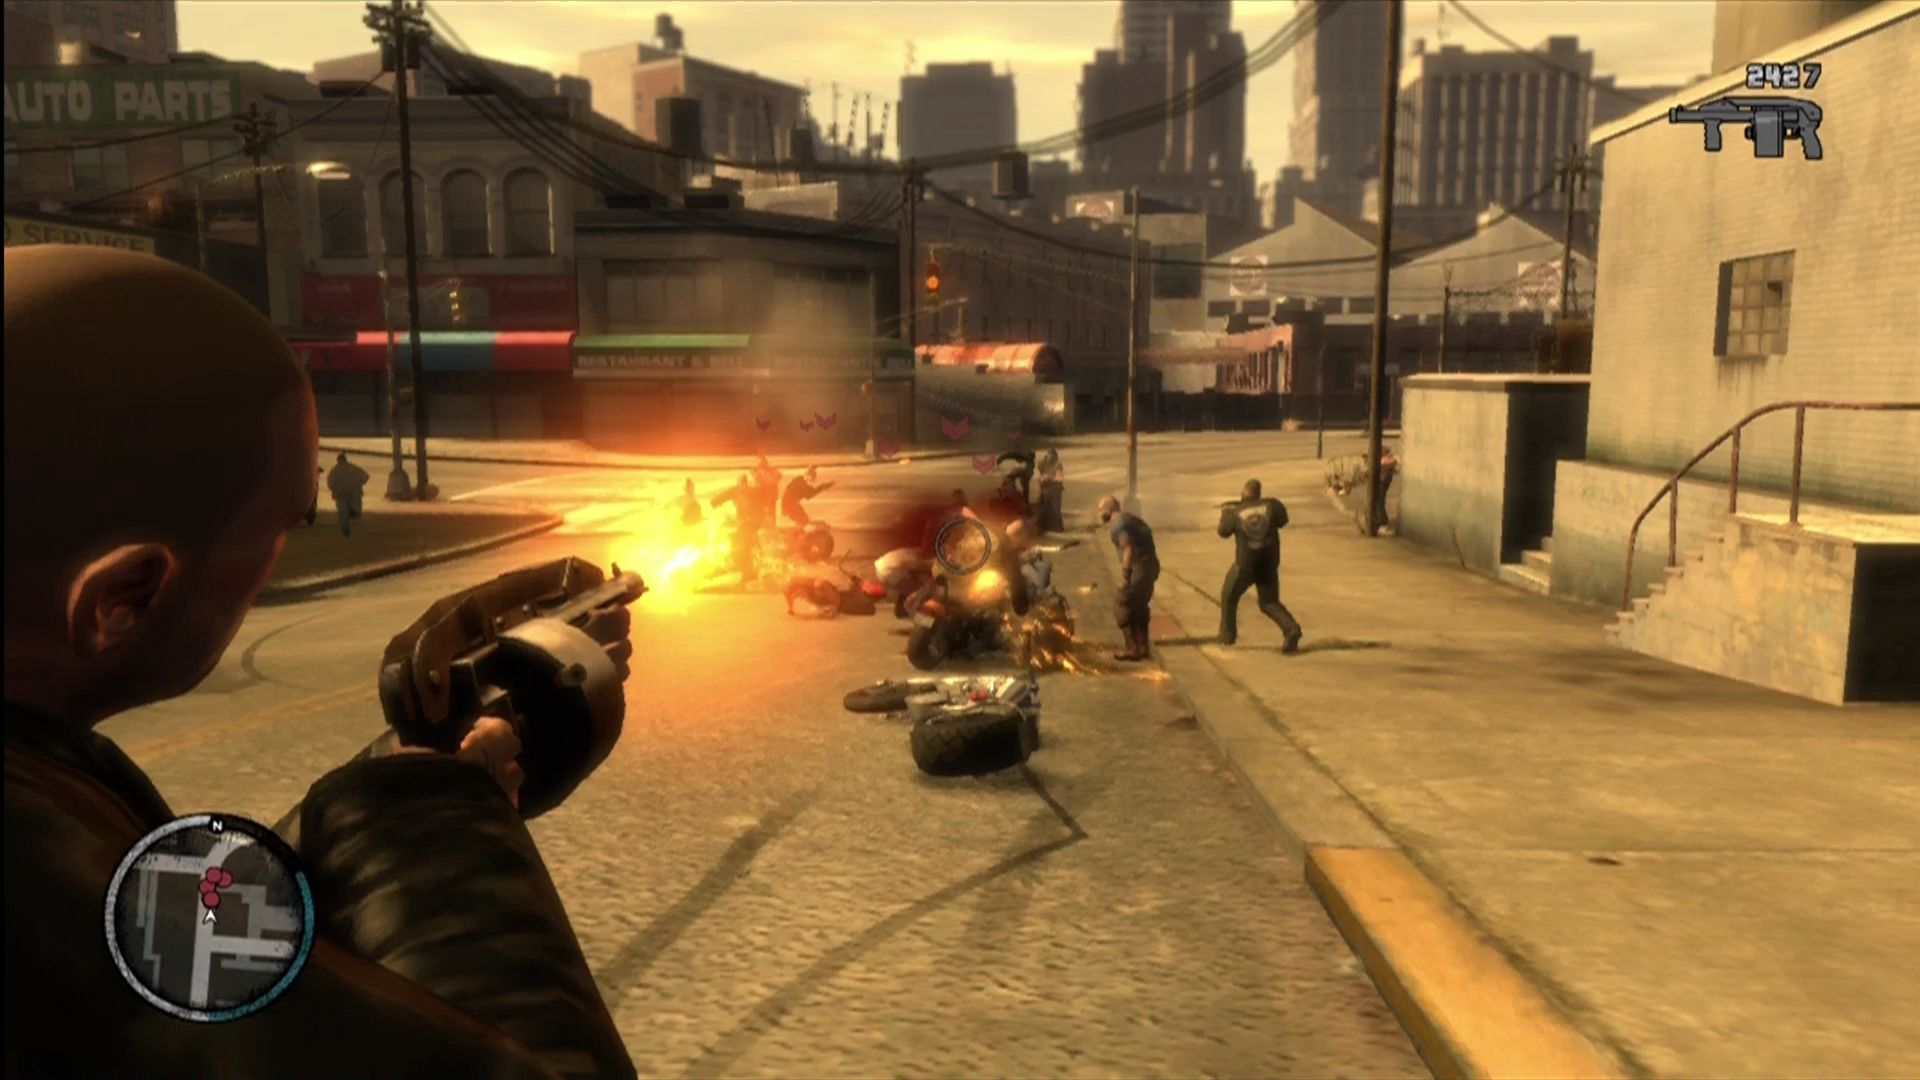 Grand Theft Auto IV: The Lost and Damned Xbox 360 Using the new auto shotgun in a gang war mission.